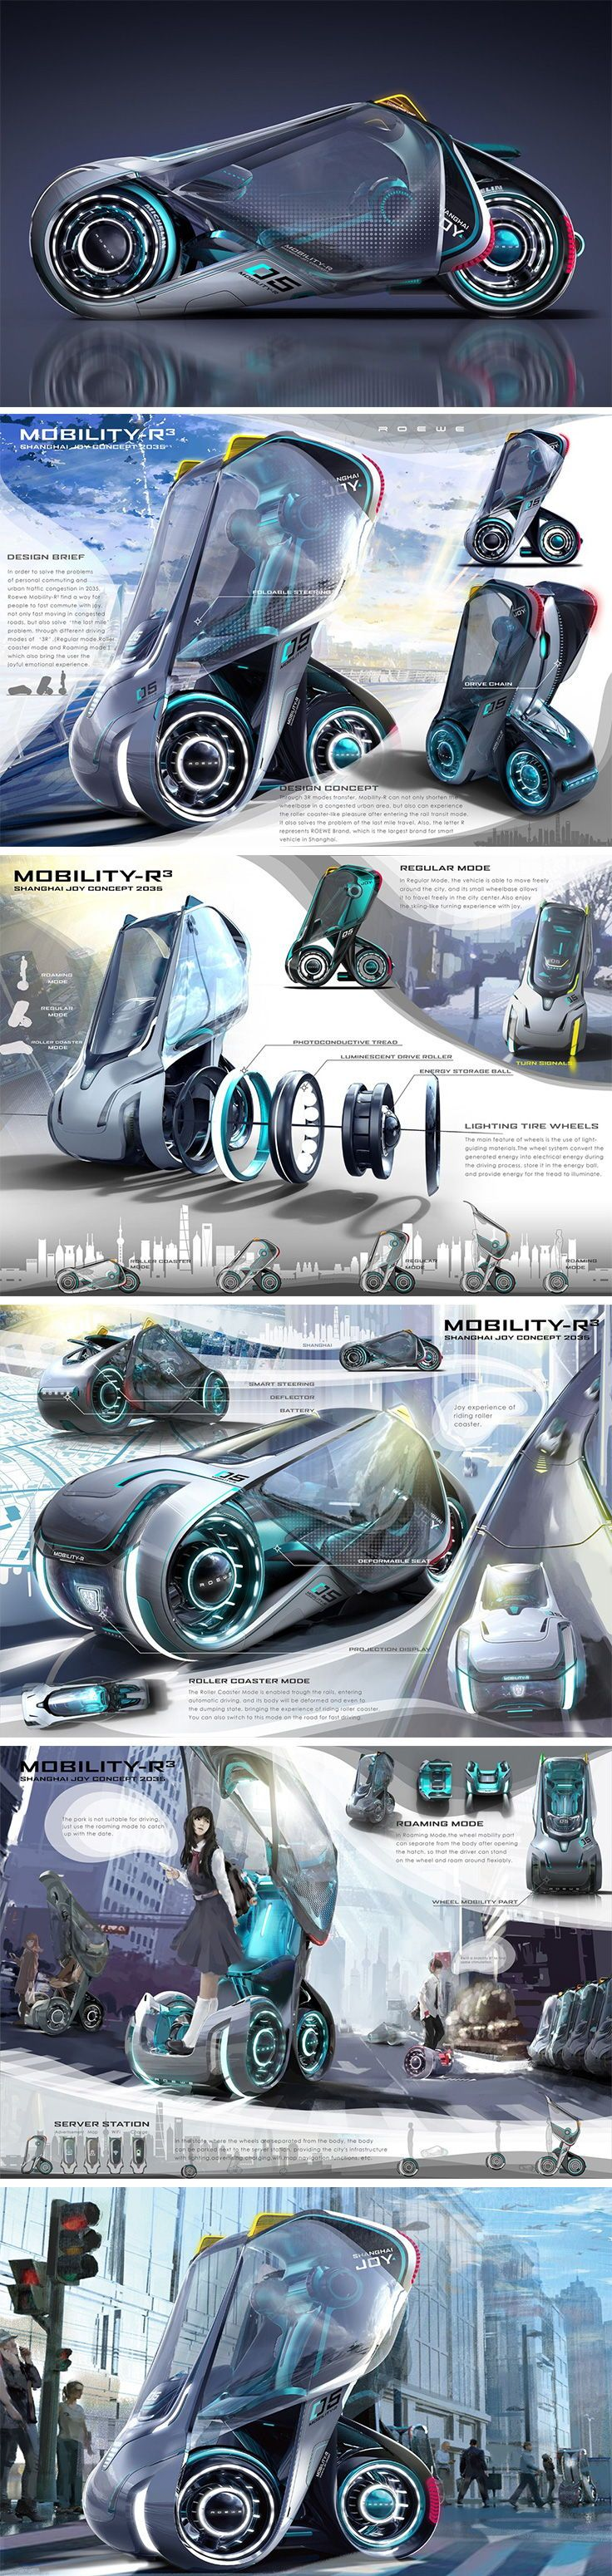 This futuristic Mobility-R3 concept adapts to the user's needs as it transforms between three forms (Regular, Roaming & Roller Coaster mode) of tran…